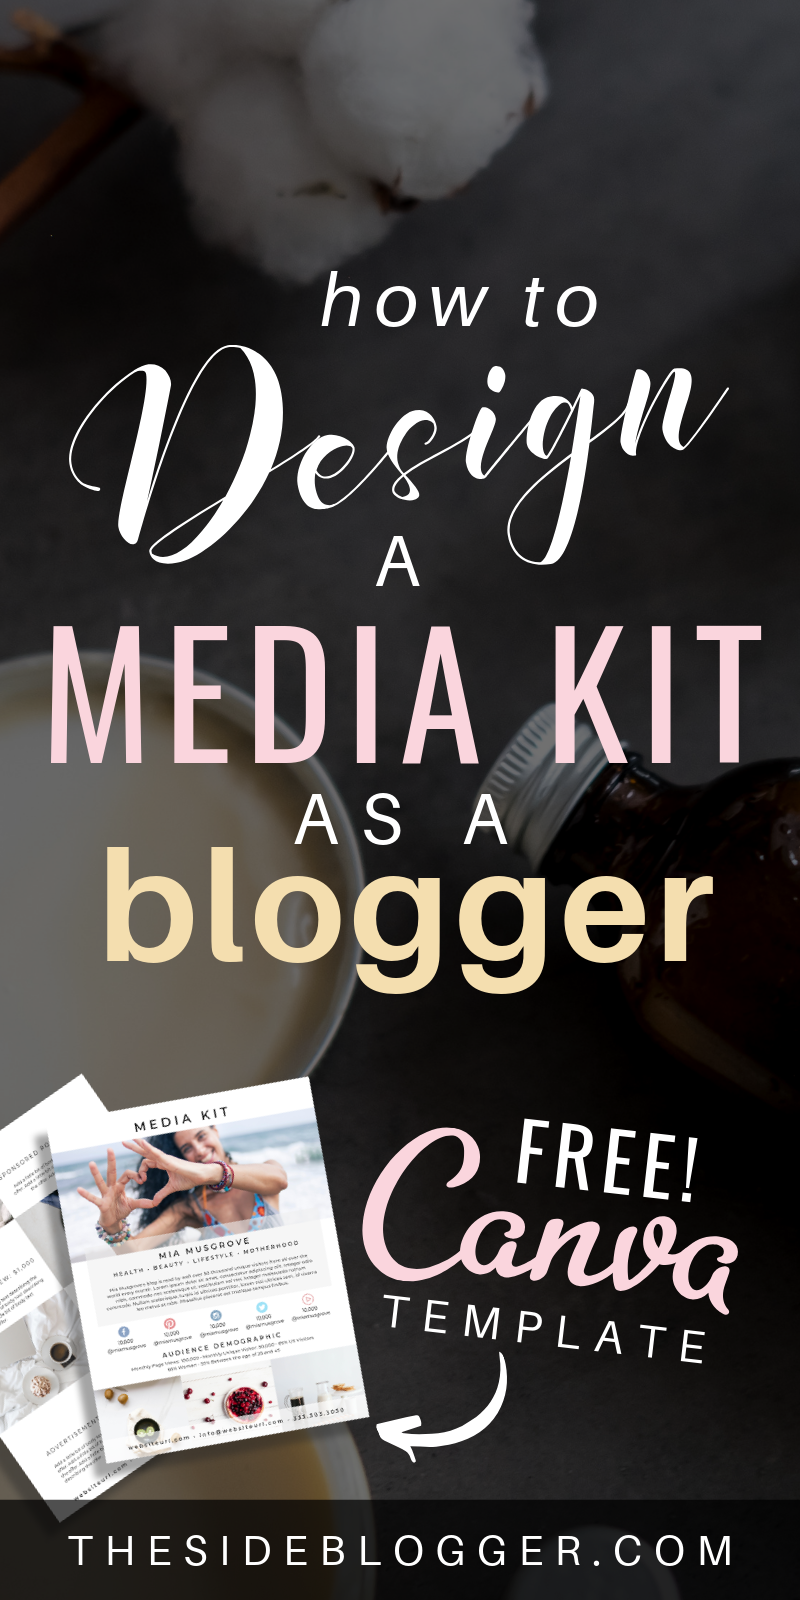 How and Why Should Bloggers Design a Media Kit (+ FREE Canva Template)